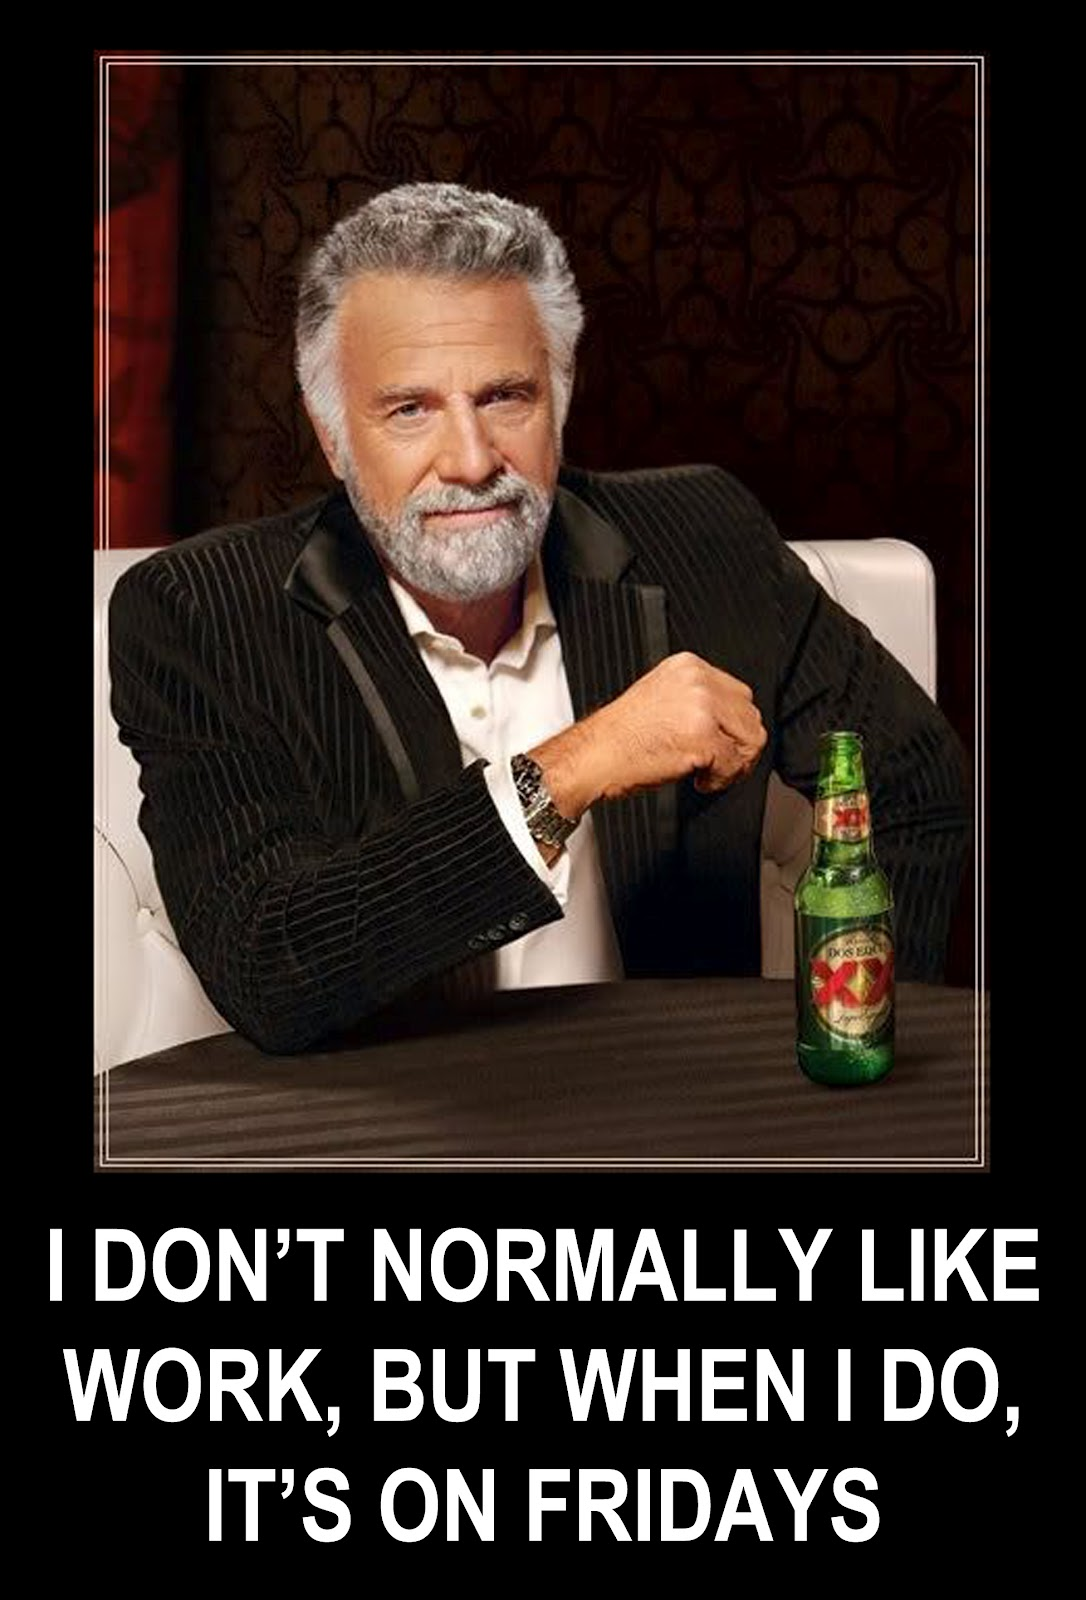 The Interesting Man In The World Quotes: The Worlds Most Interesting Man Quotes. QuotesGram